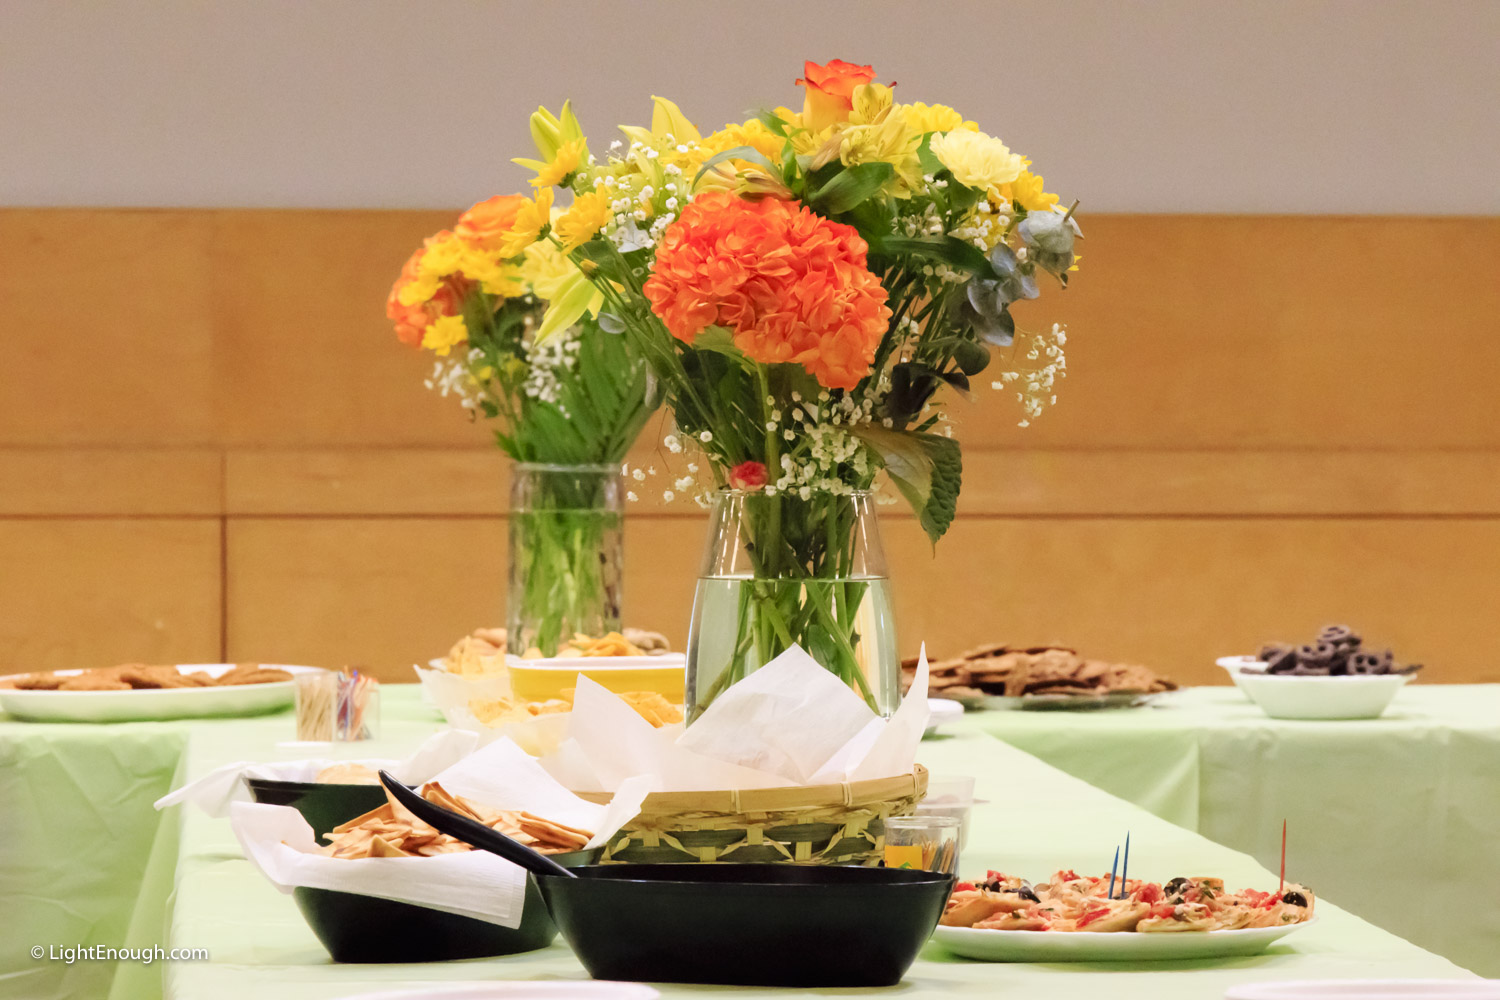 A beautiful table setting with vase of flowers waiting for the post-concert reception. UUCA Spring Choir Concert (June 12, 2016)